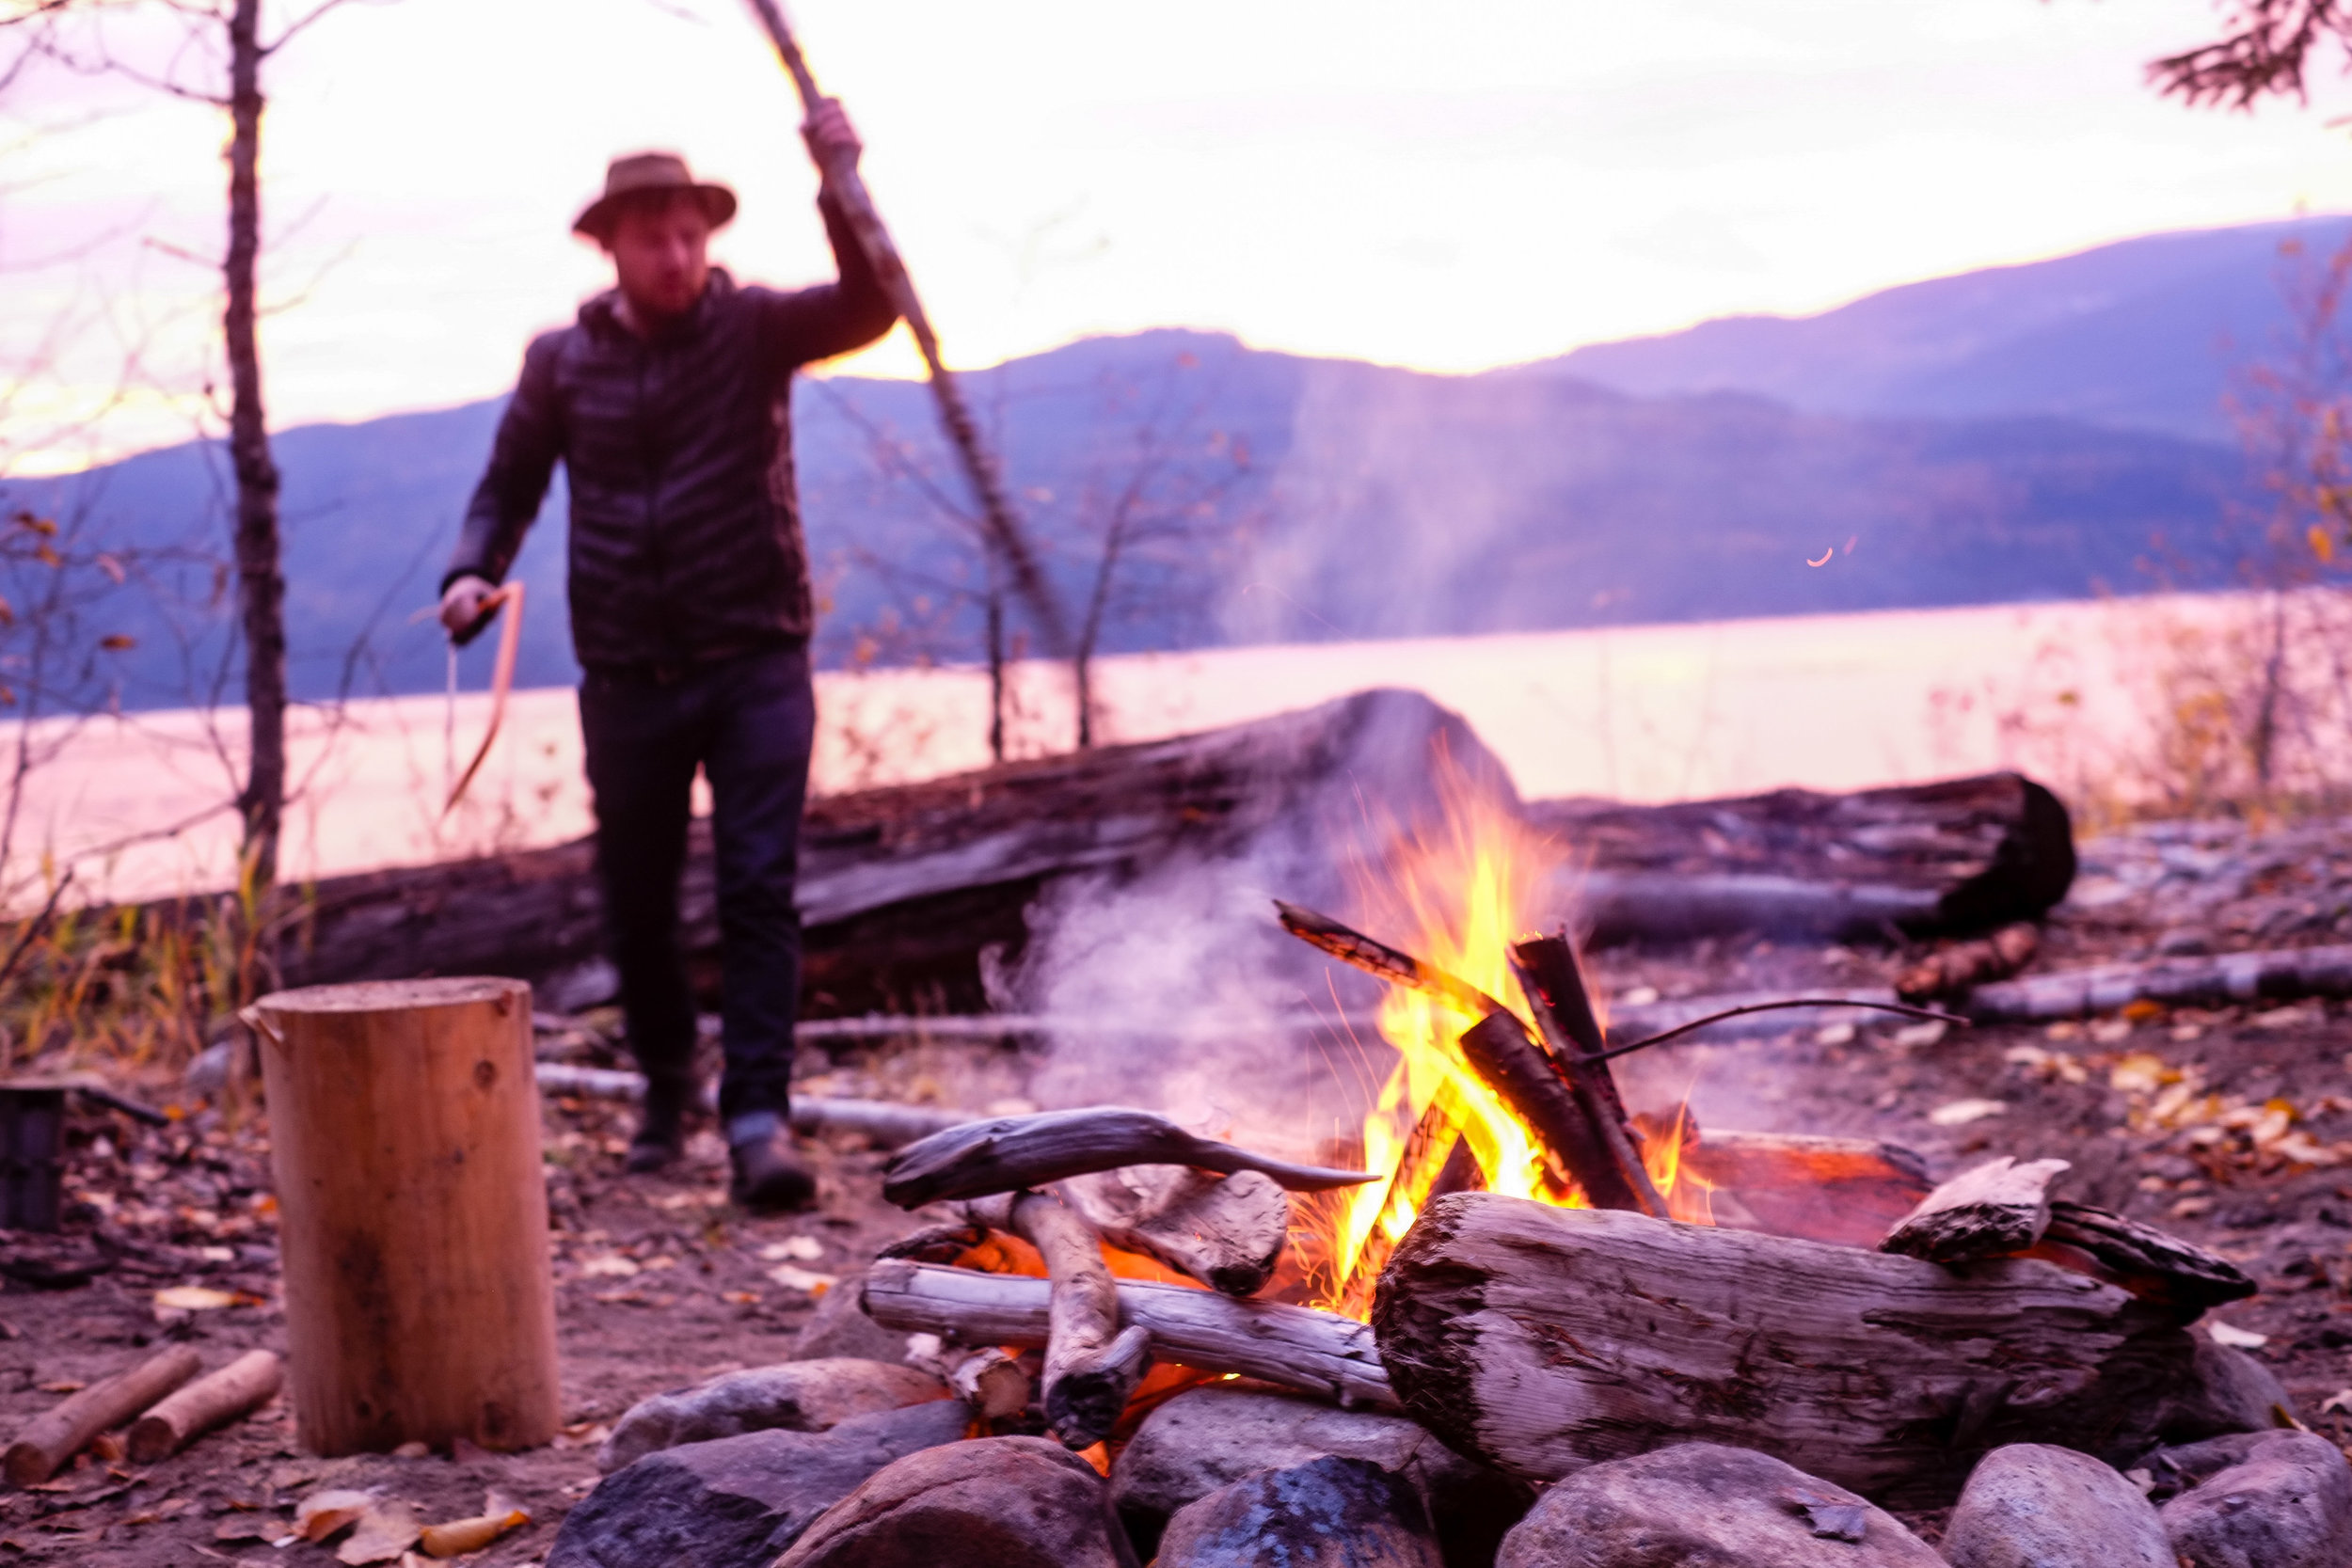 The_Sunnyside_©_Wildcampen_Outdoorcooking.jpg